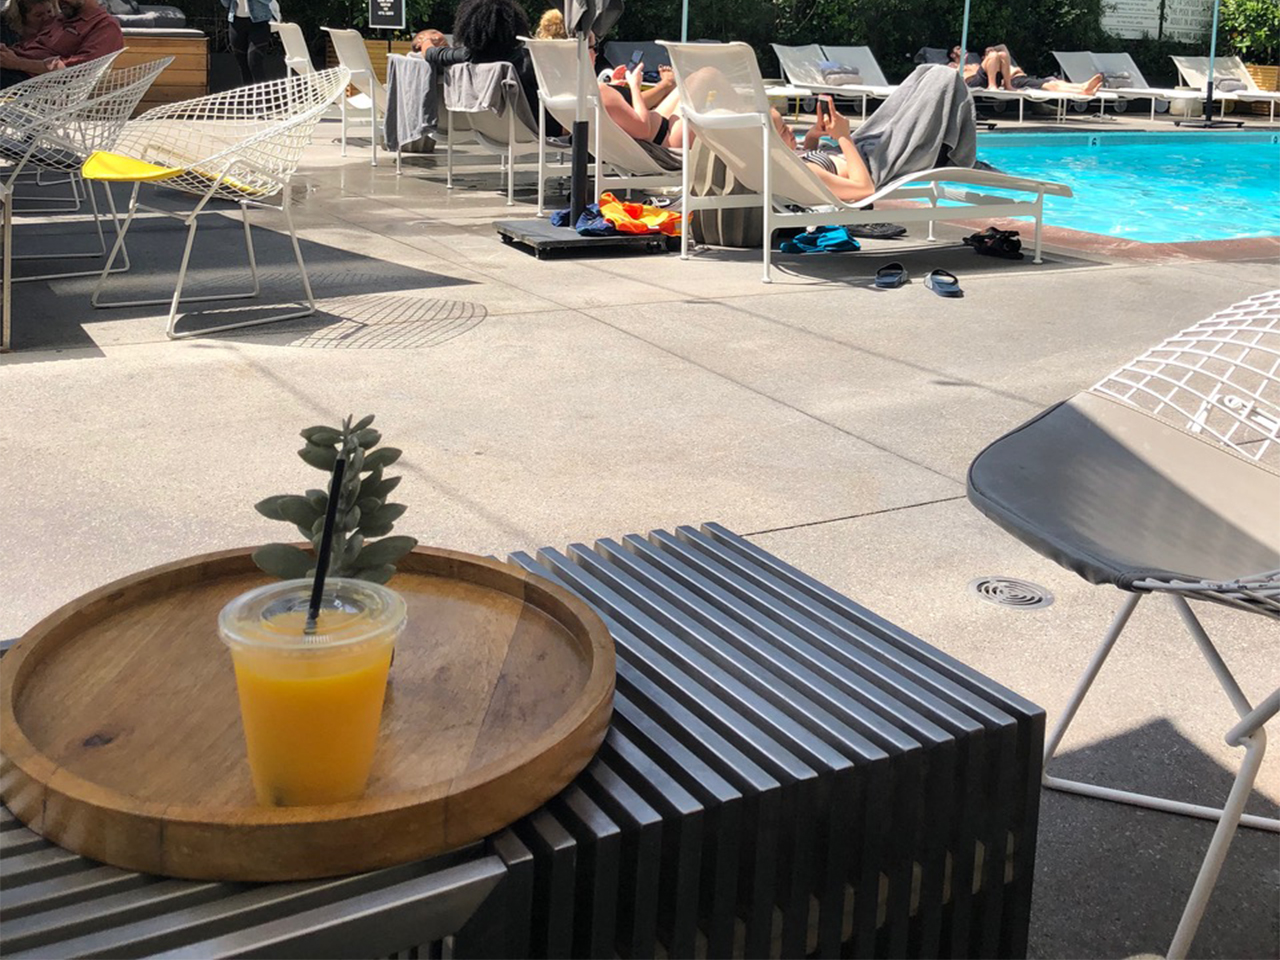 orange cocktail on a table near a pool